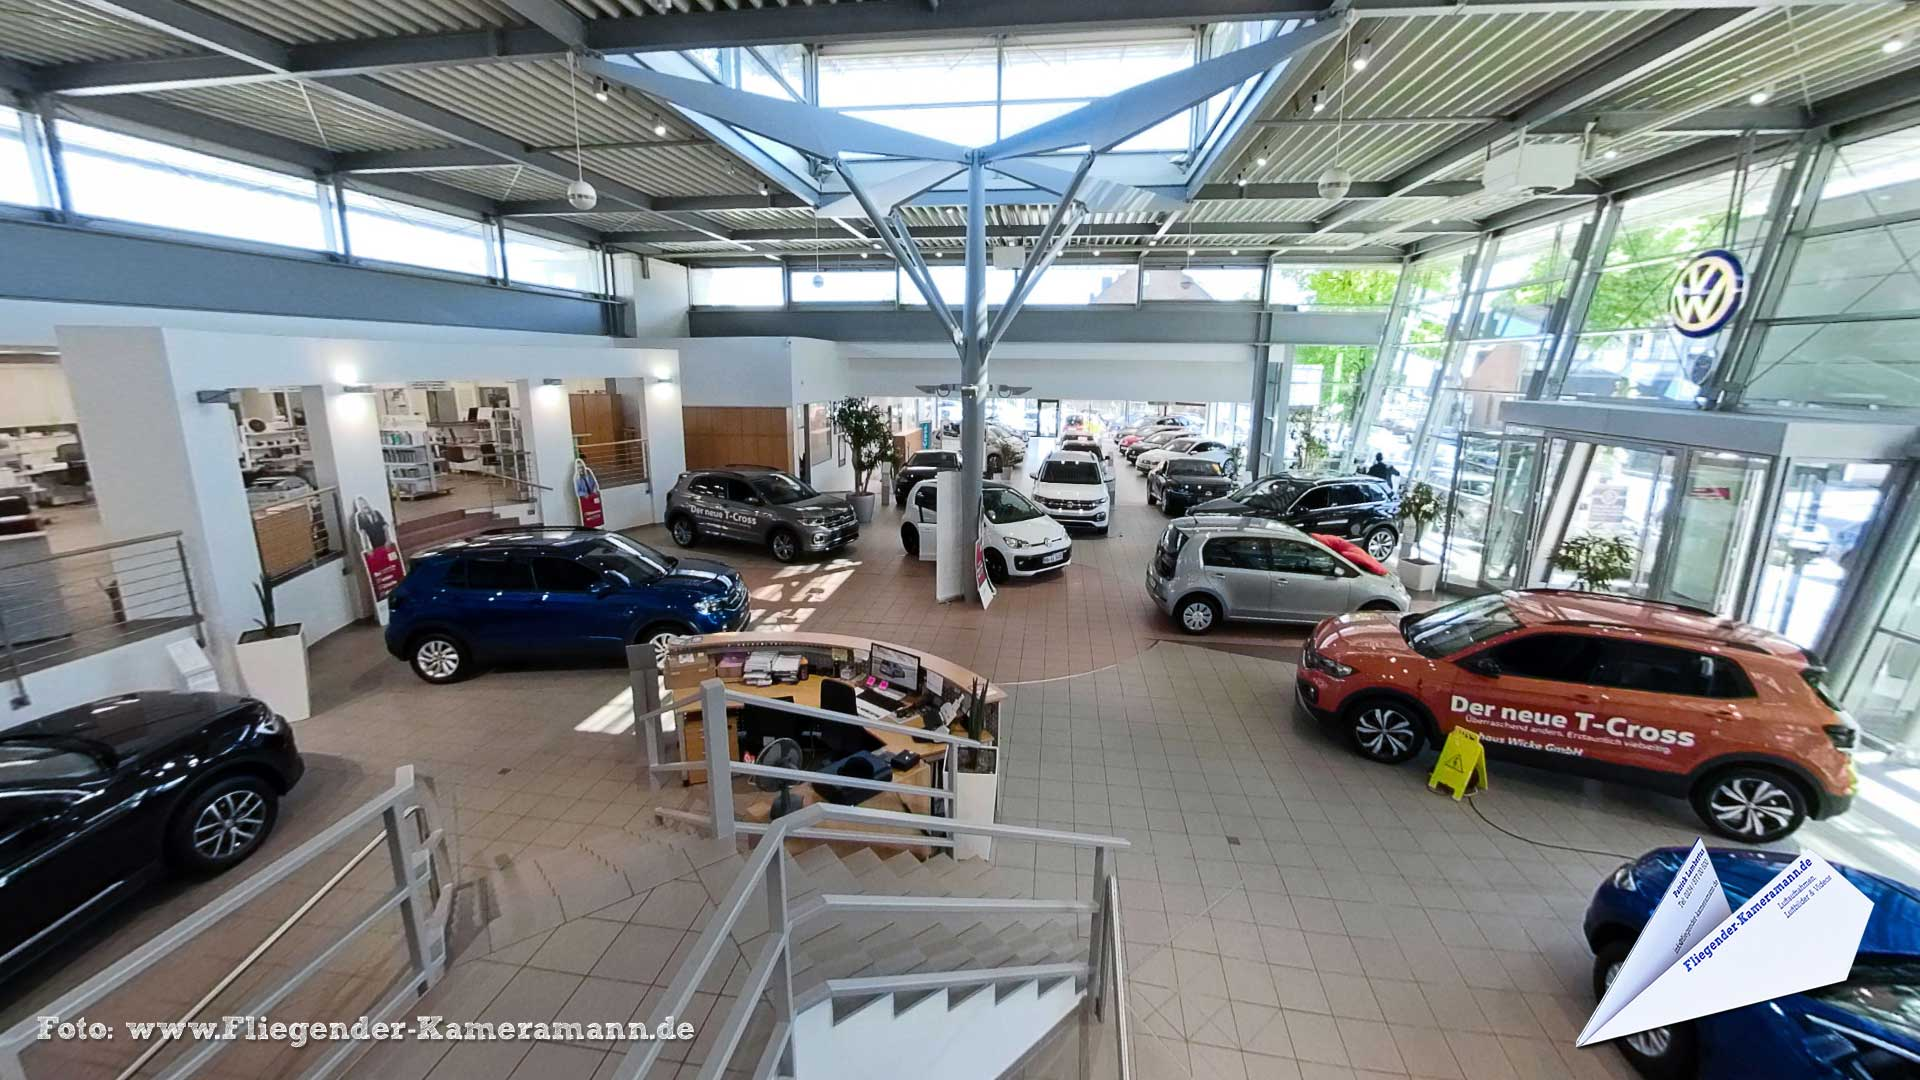 Autohaus Wicke in der Bochum - 360°-Panorama